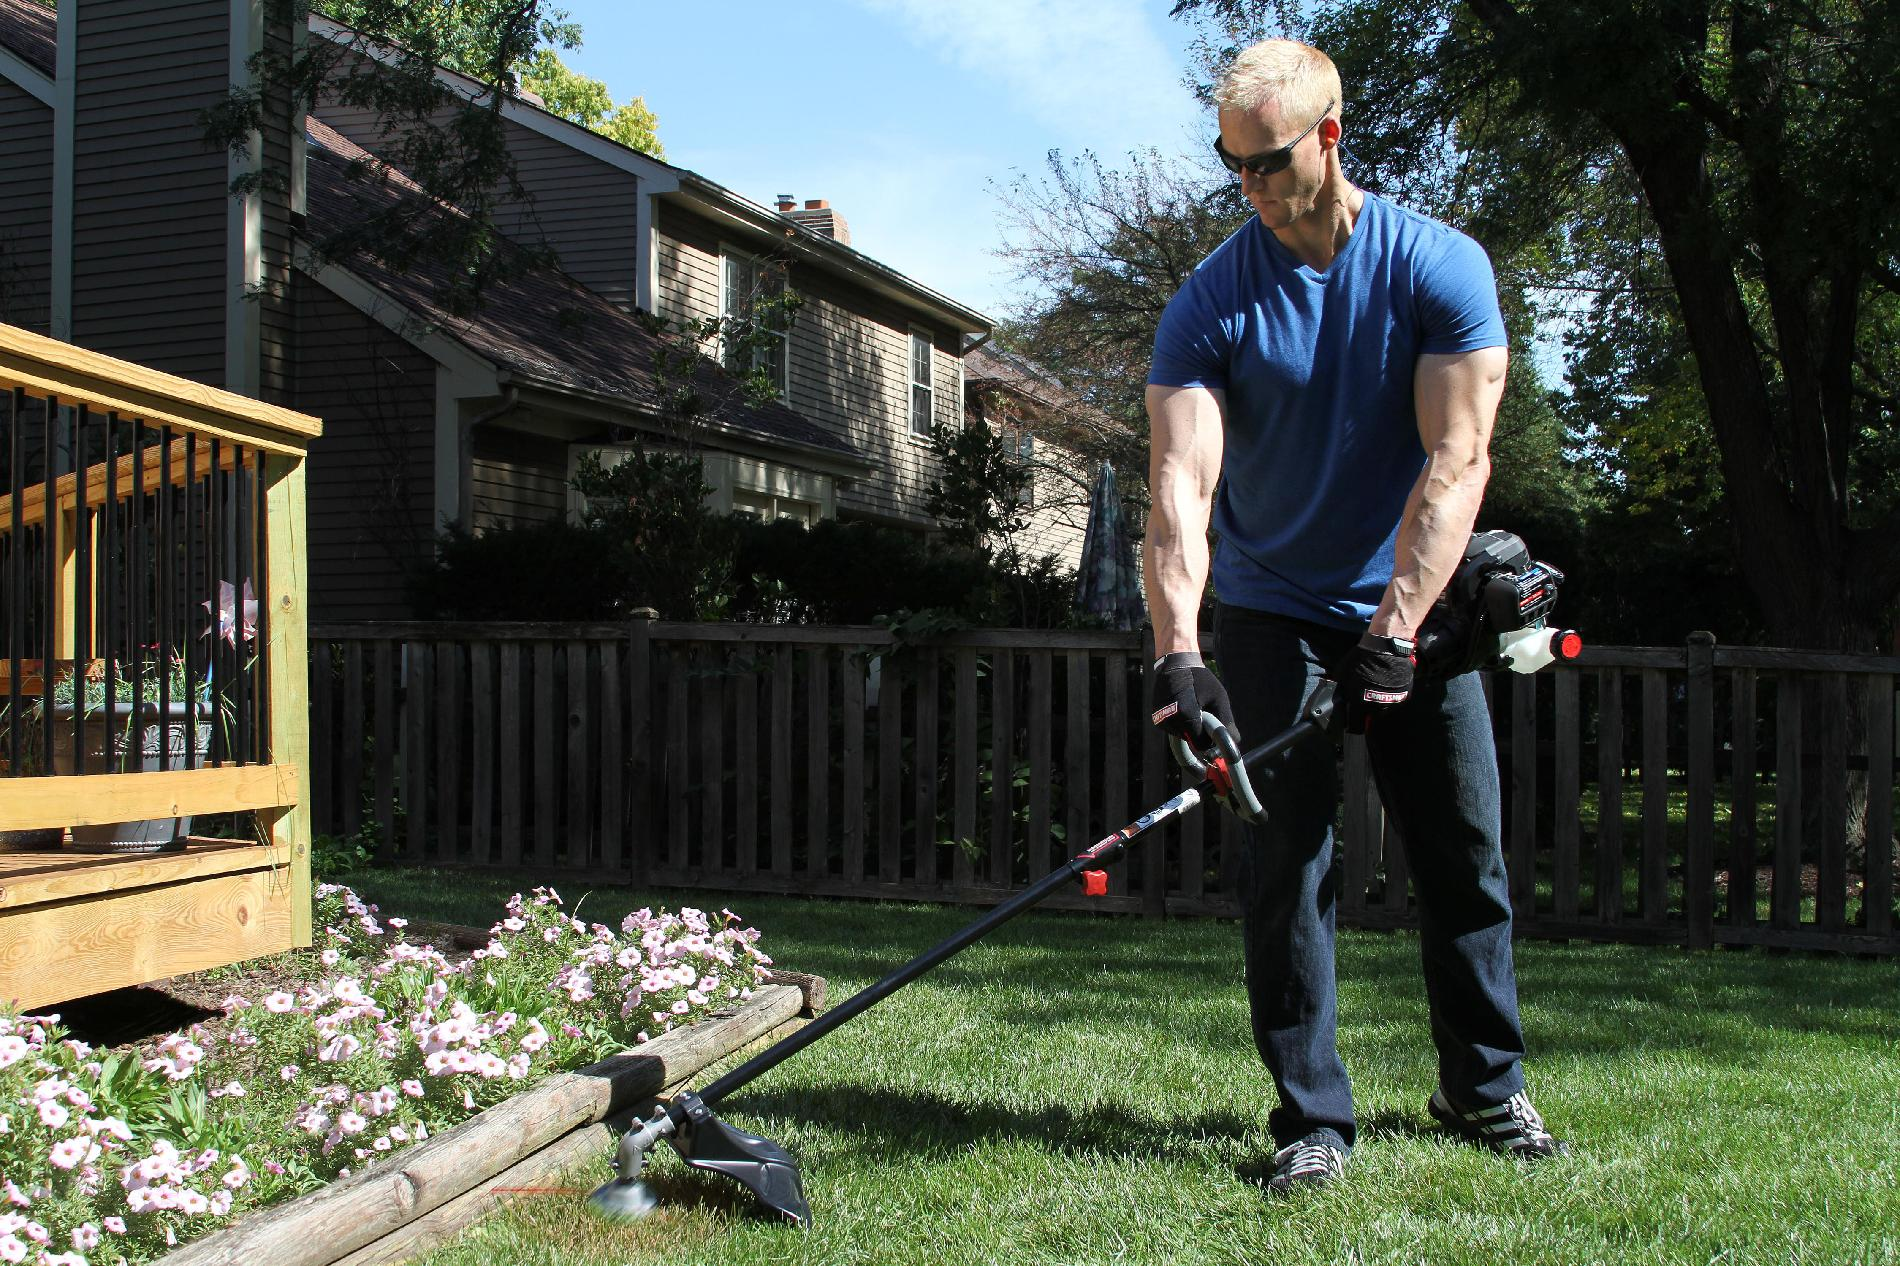 Craftsman 27cc* 2-Cycle Straight Shaft WeedWacker™Gas Trimmer.